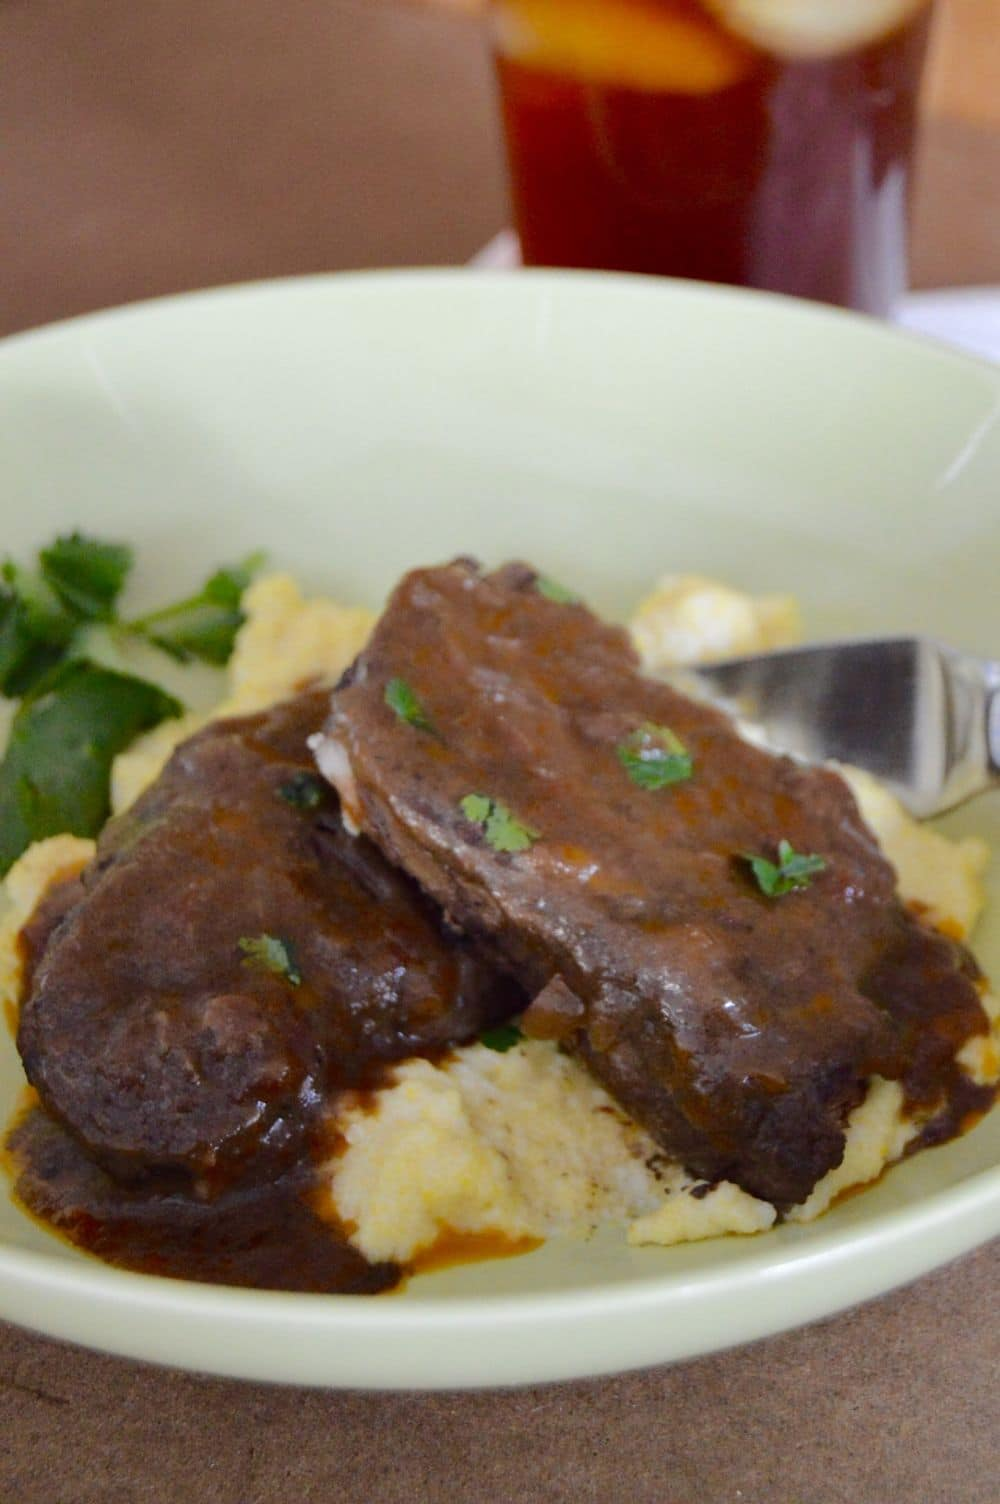 Braised Red Eye Short Ribs, when you are looking for that perfect meal that is filling, warm and easy to make for dinner, but also doesn't take much prep or a lot of effort. This recipe for Braised Red Eye Short Ribs will make you shriek with delight. It's all of those things and so very delicious… a win-win right? There's also a secret surprise with this recipe…..… I'll tell you what that is at the end of this post ;)